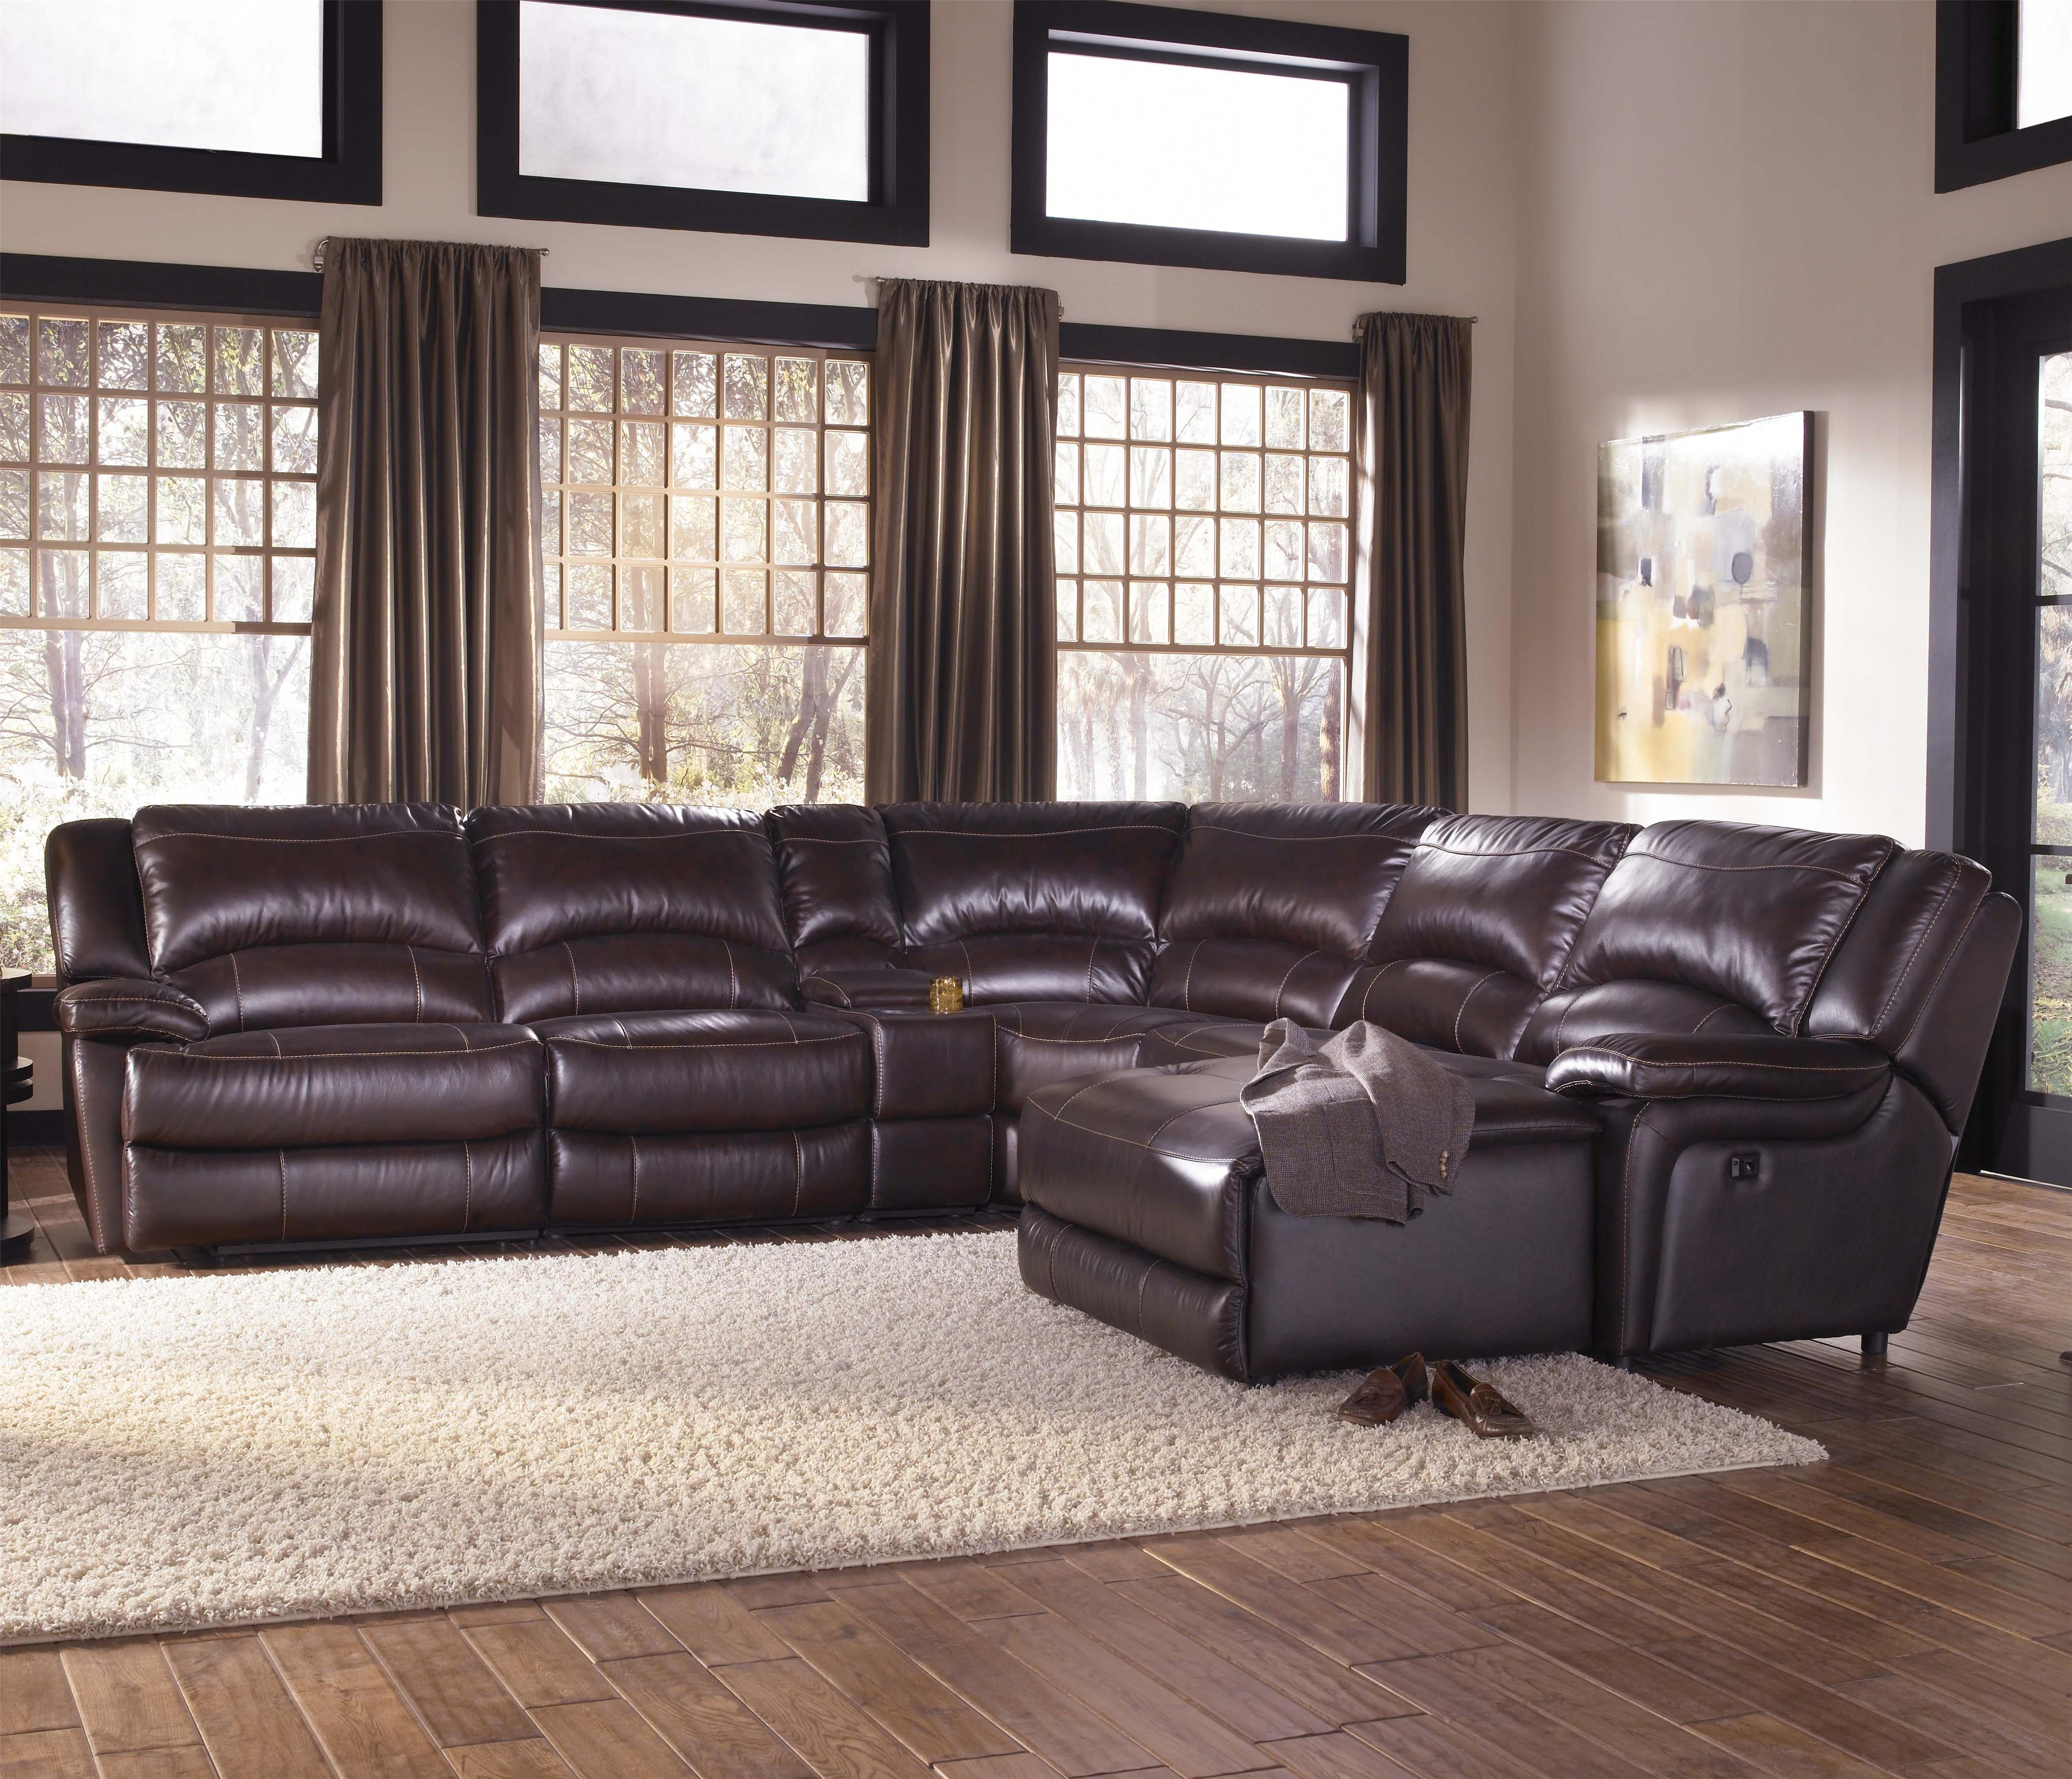 Best htl furniture reviews homesfeed for Sectional couch rug